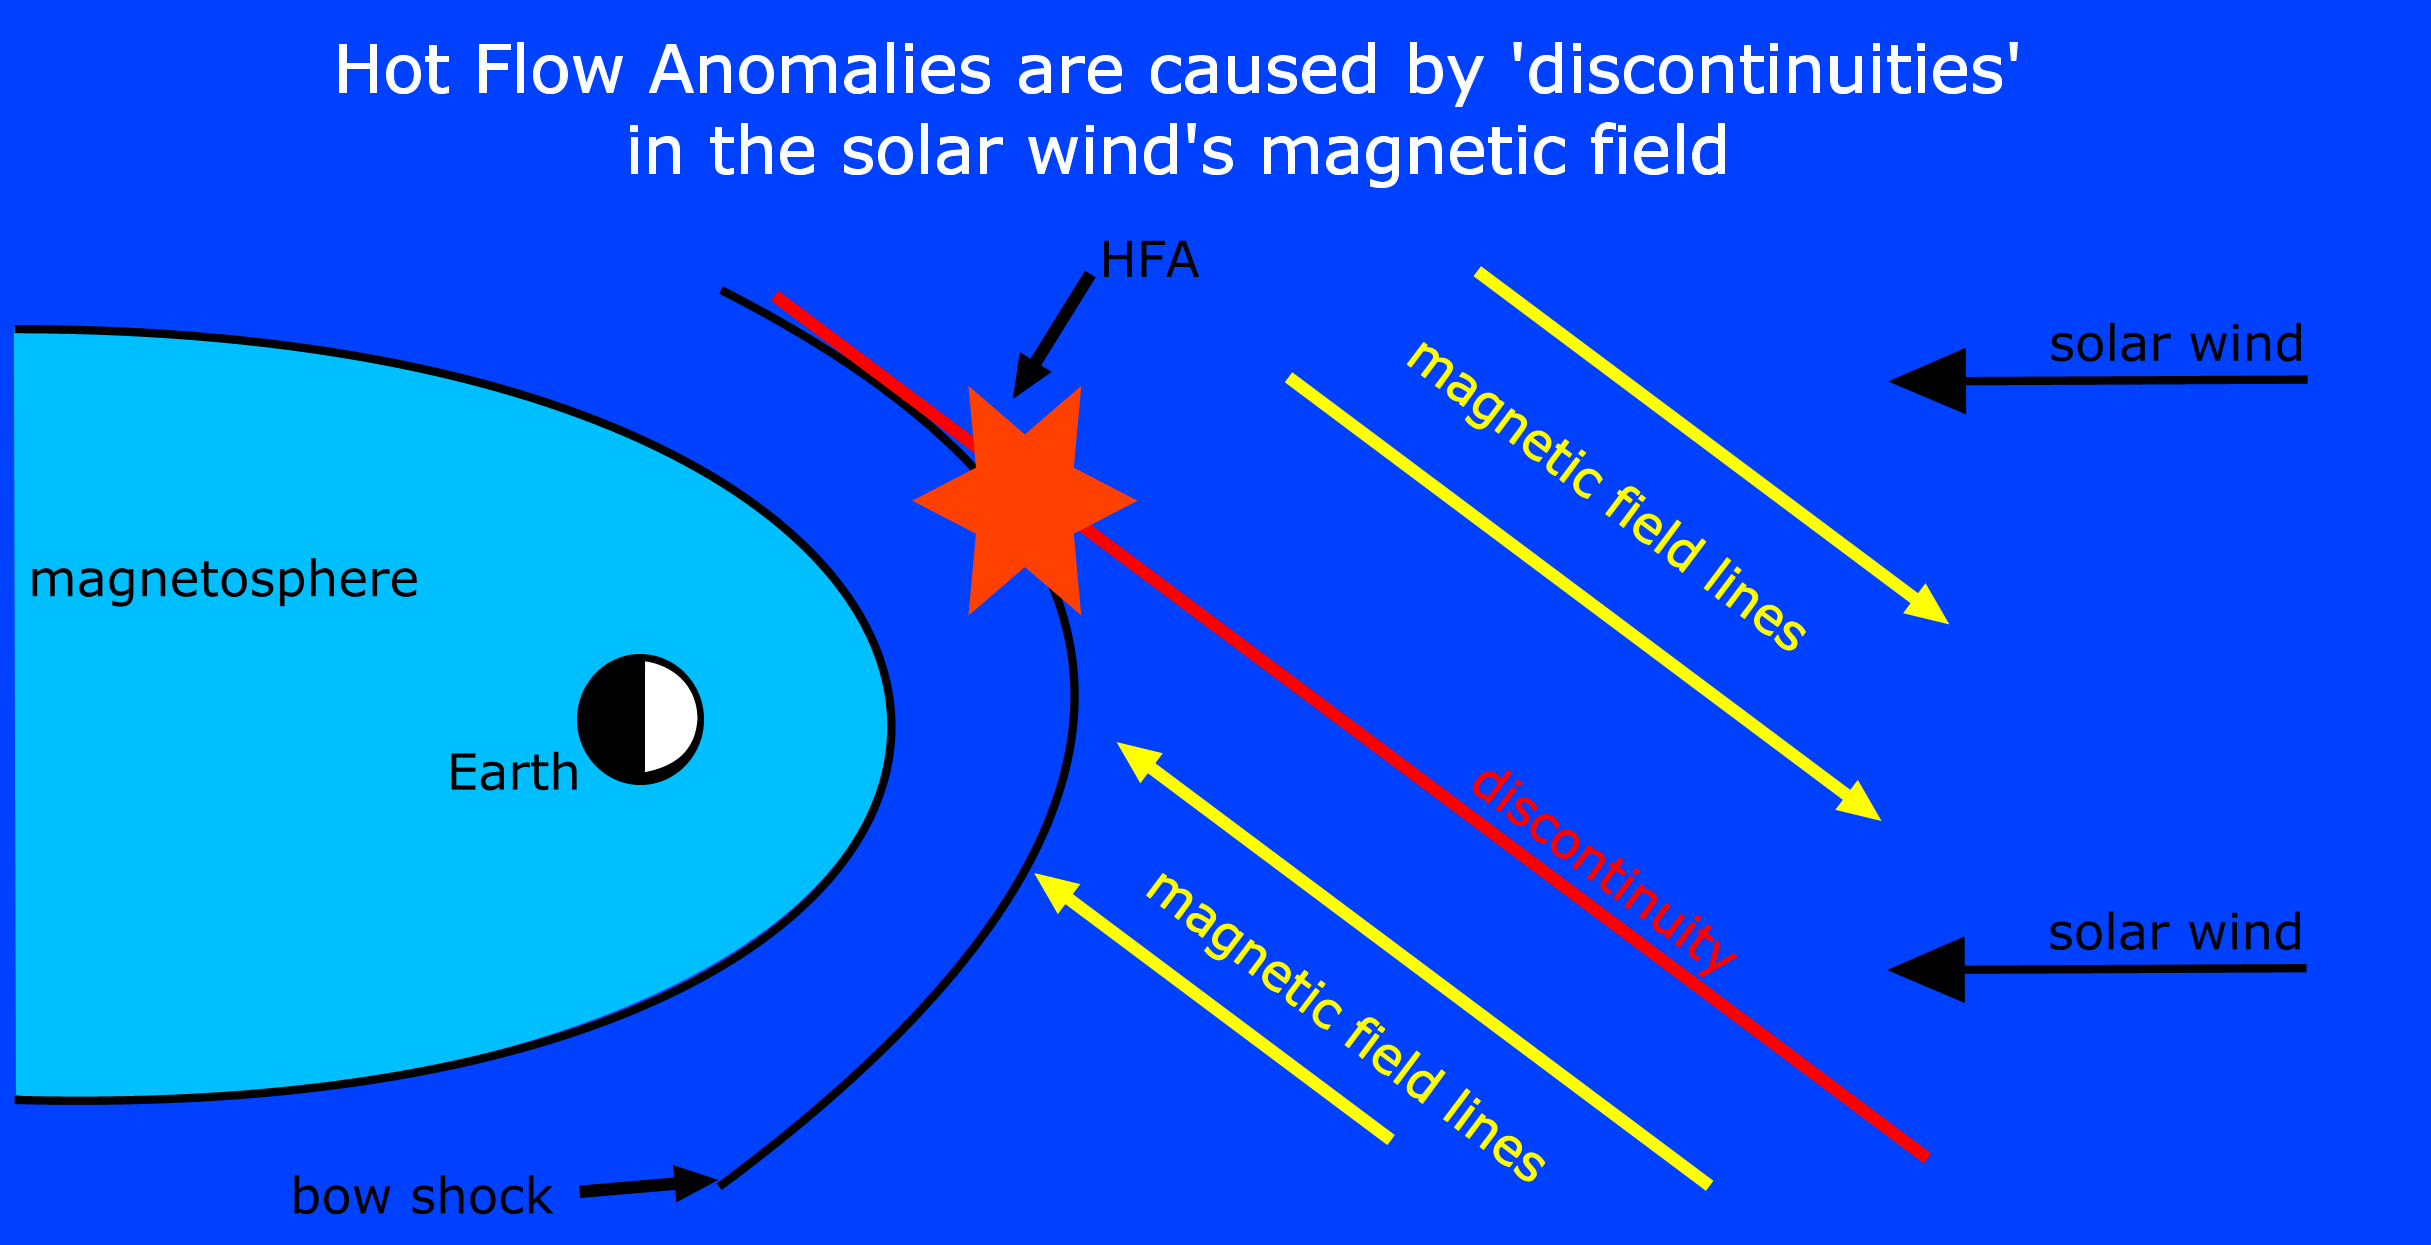 Hot Flow Anomalies caused by discontinuities in the solar wind